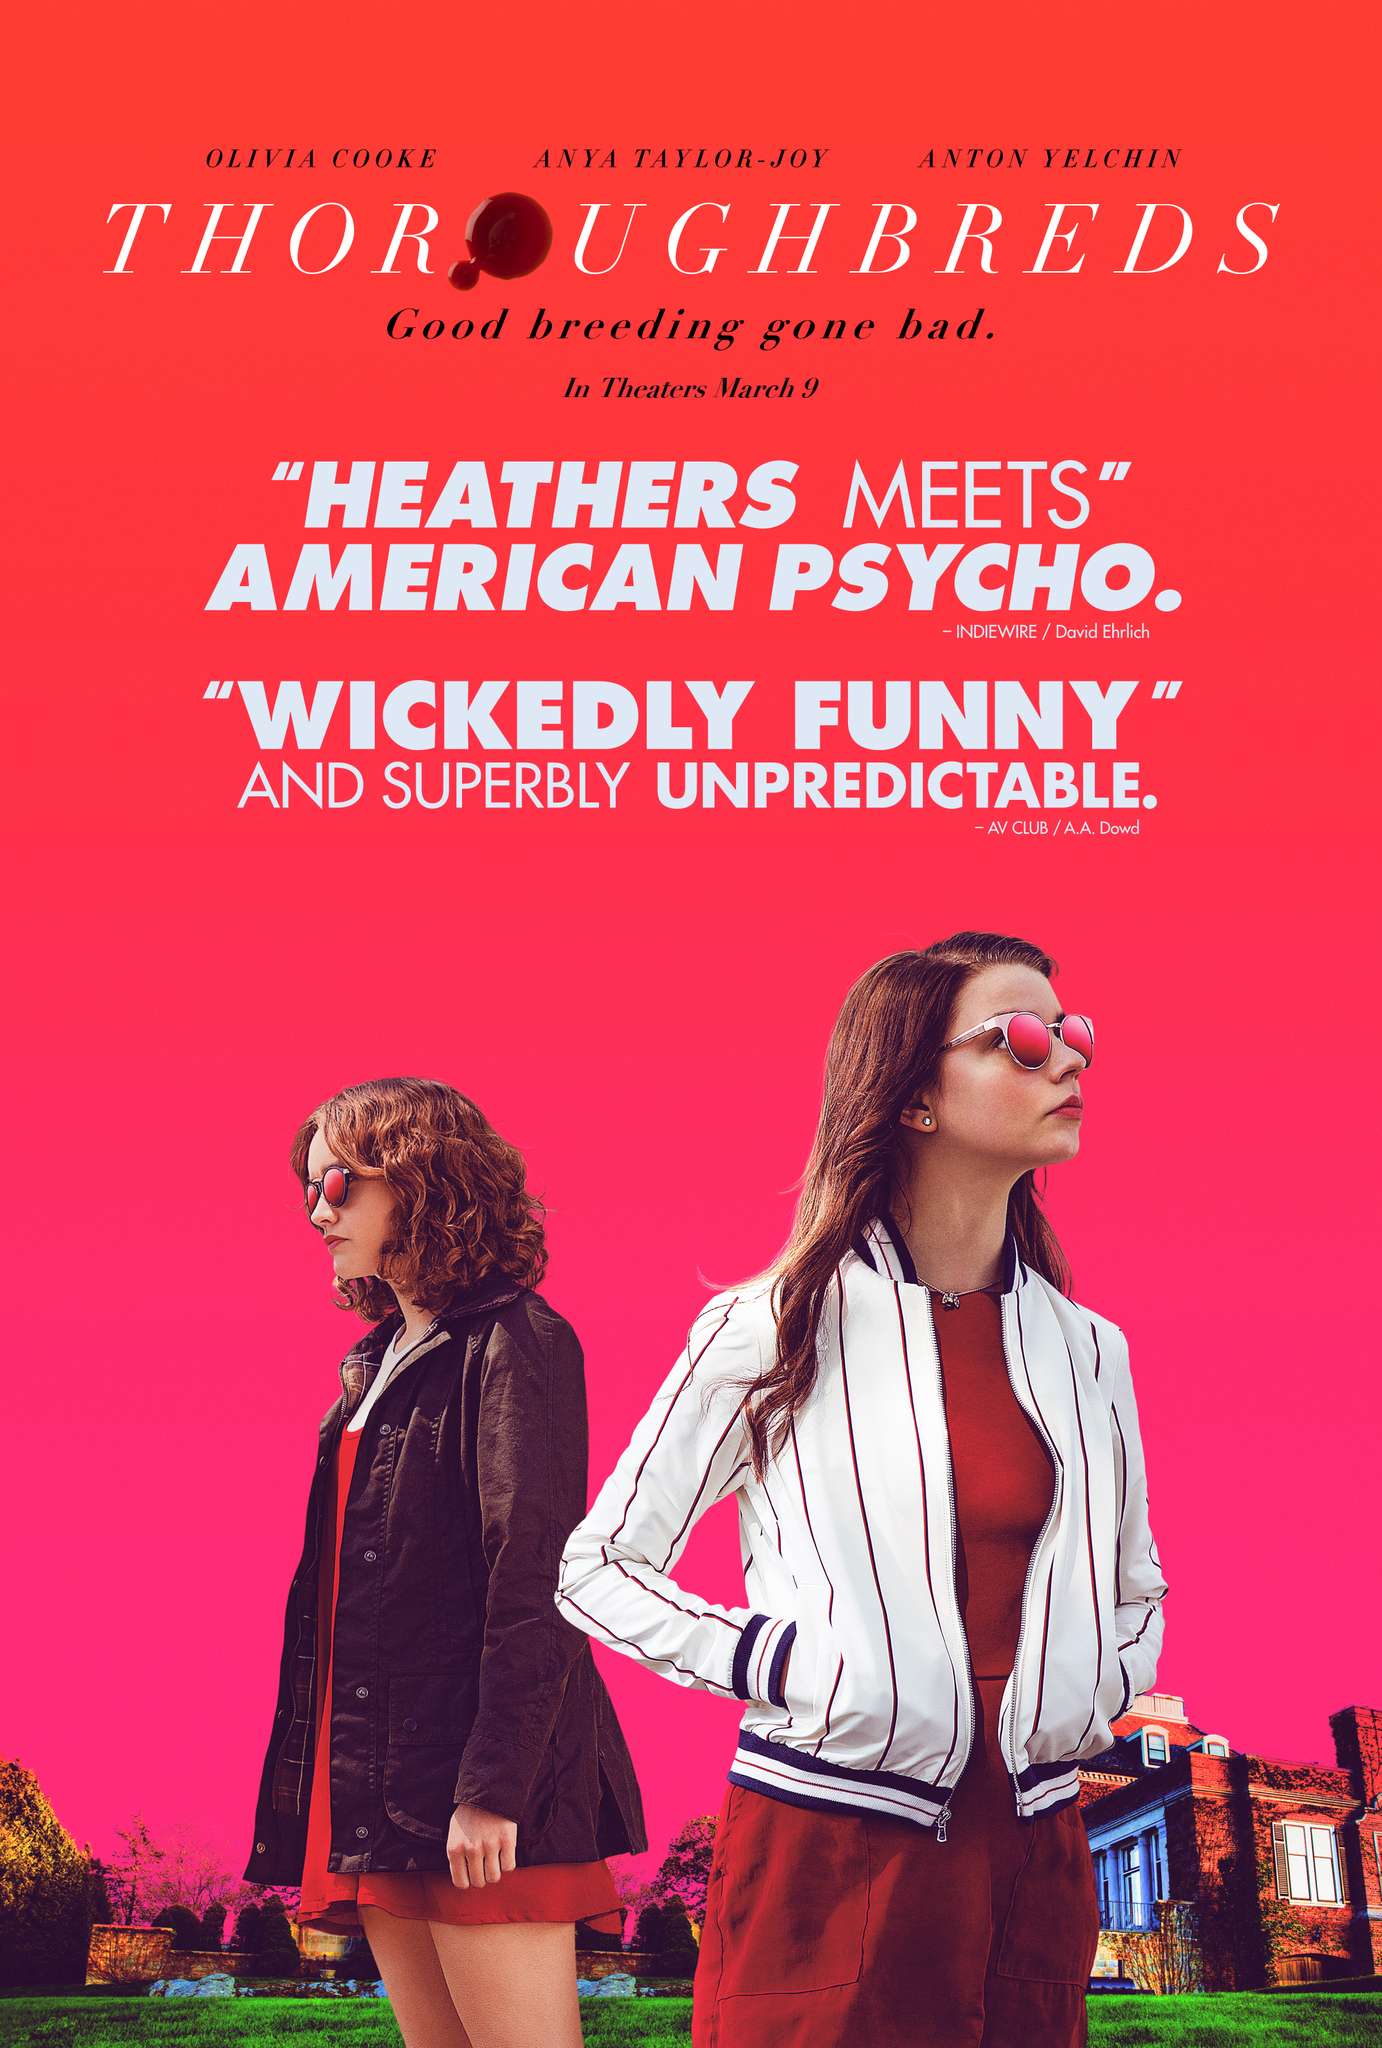 Image result for thoroughbreds movie poster imdb""